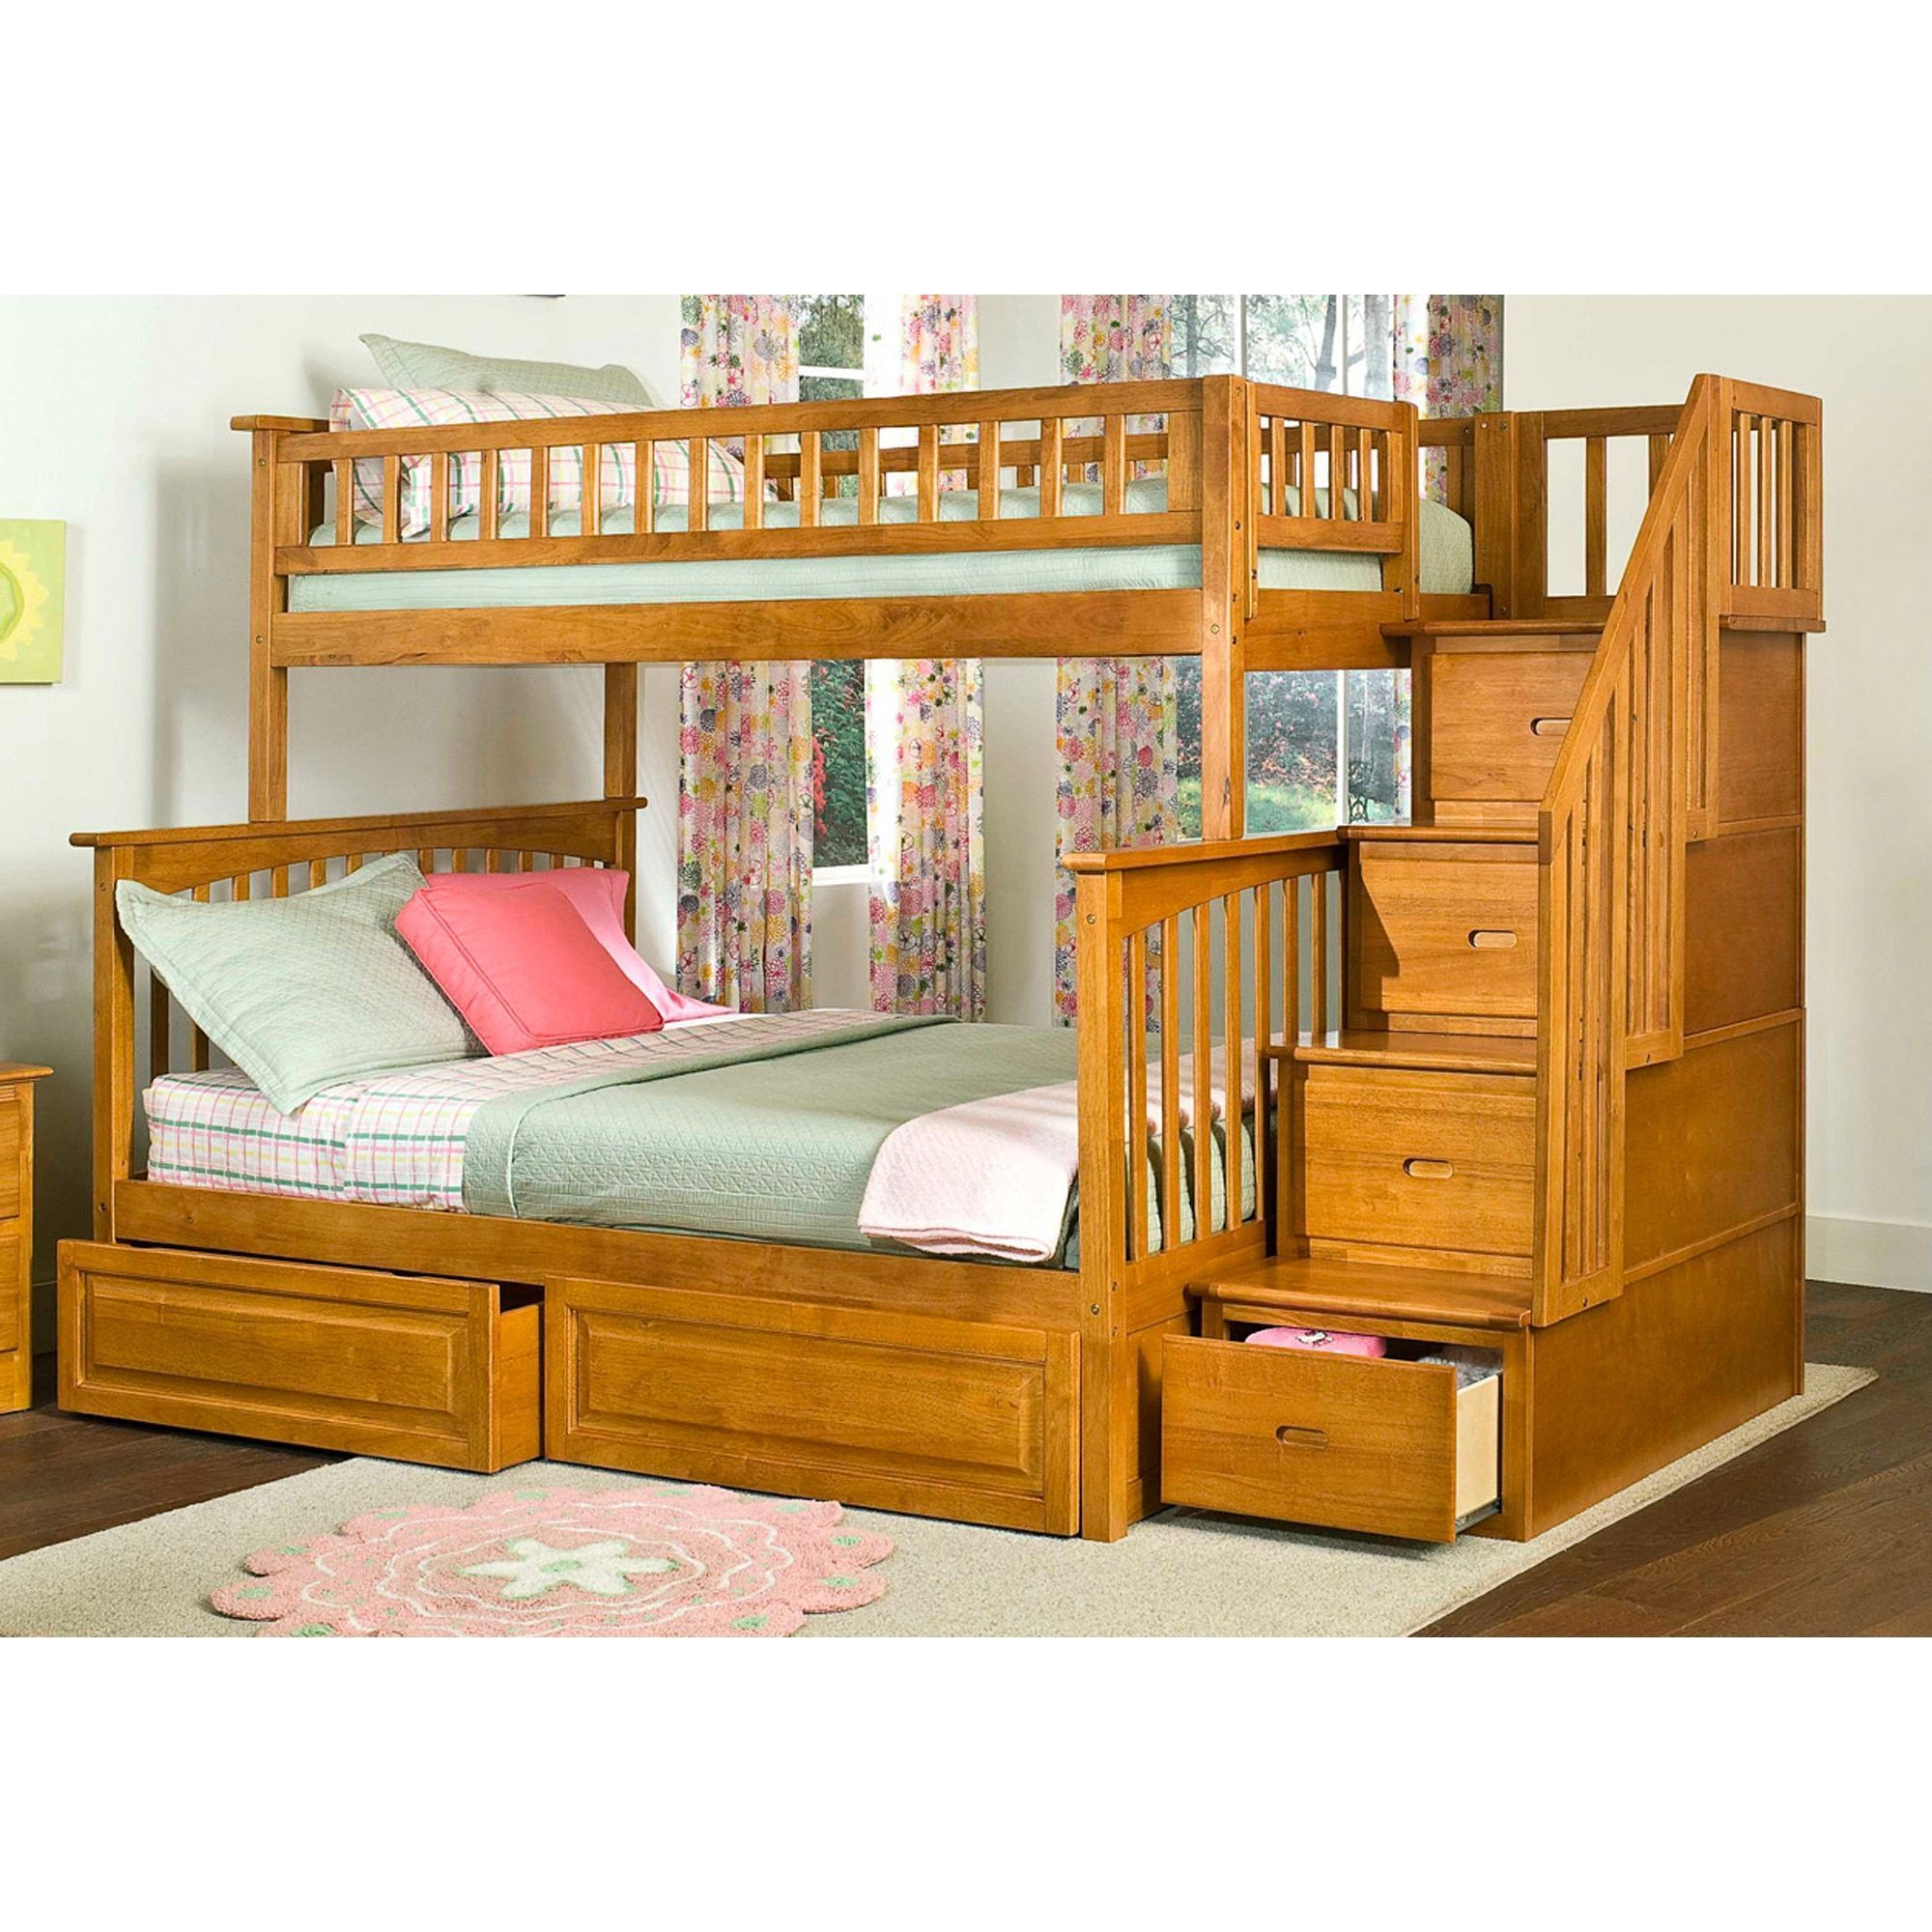 Atlantic Furniture Columbia Staircase Bunk Bed with Bed